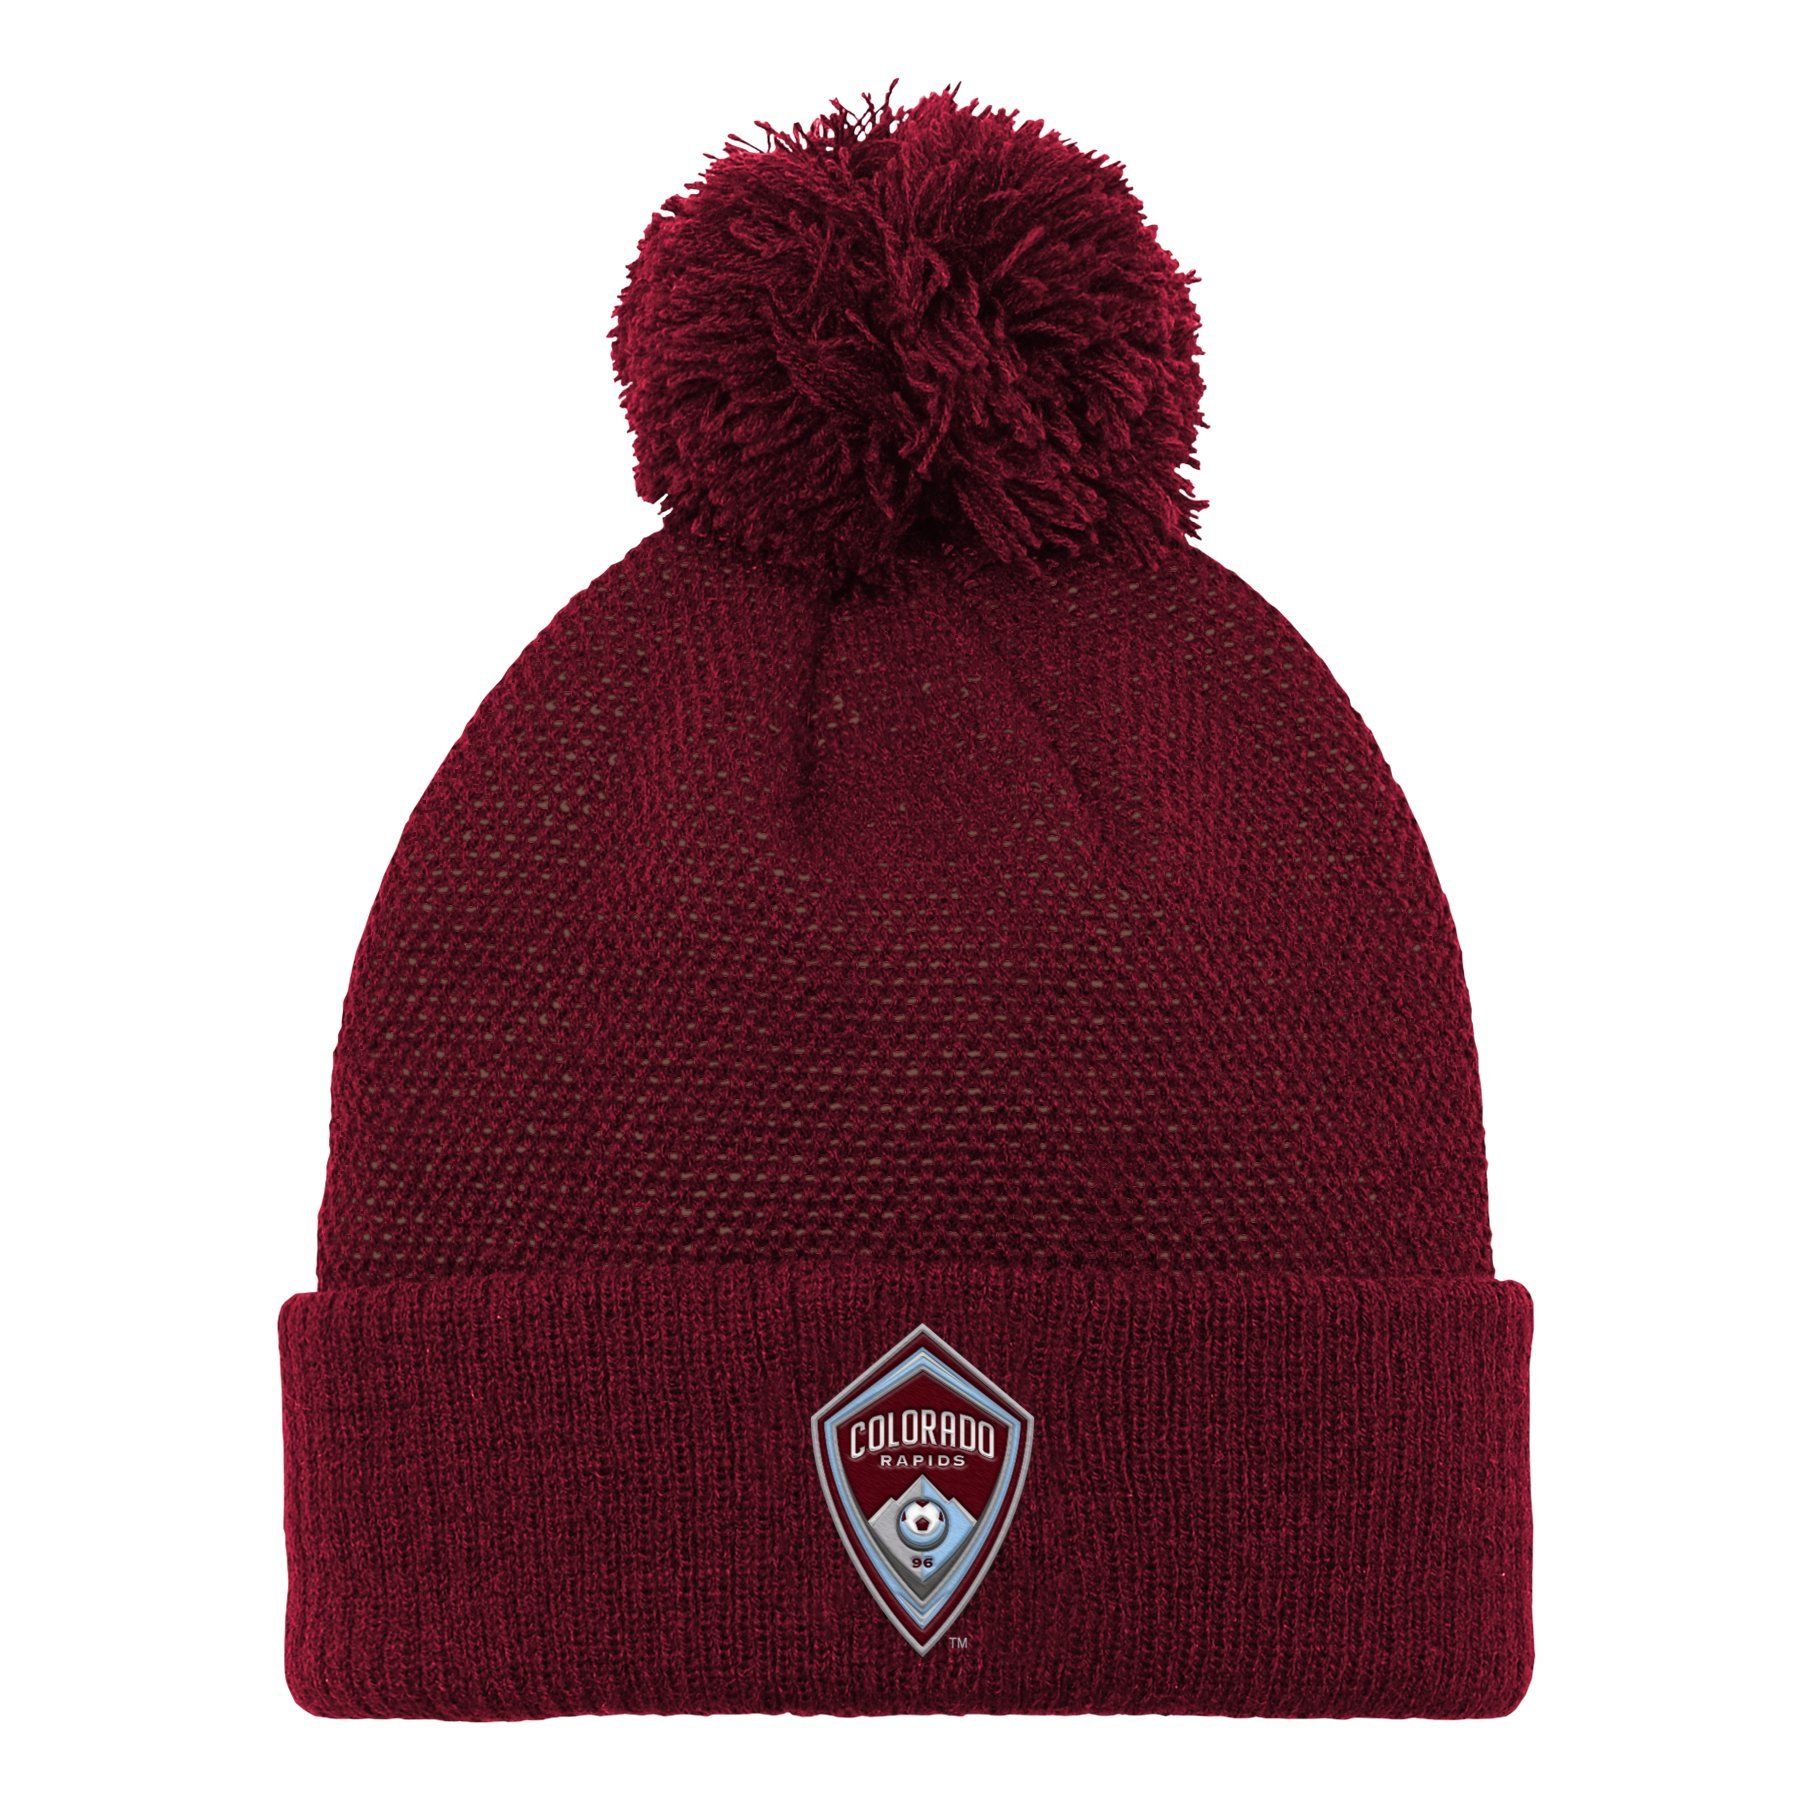 Outerstuff MLS Colorado Rapids Boys Cuffed Knit Hat with Pom, Burgundy, One Size (8)